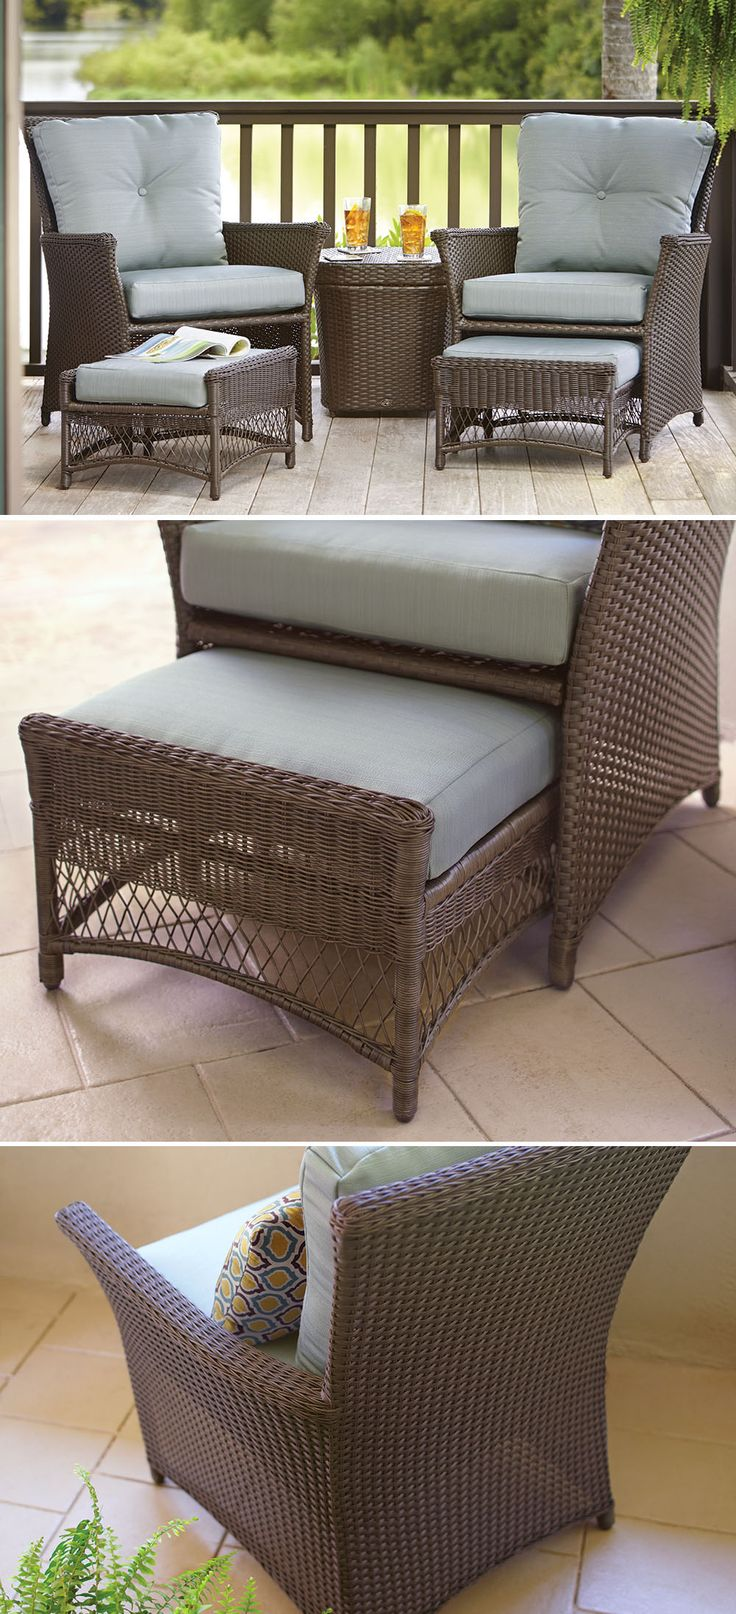 Garden Furniture East Bay diy wooden outdoor furniture - creditrestore